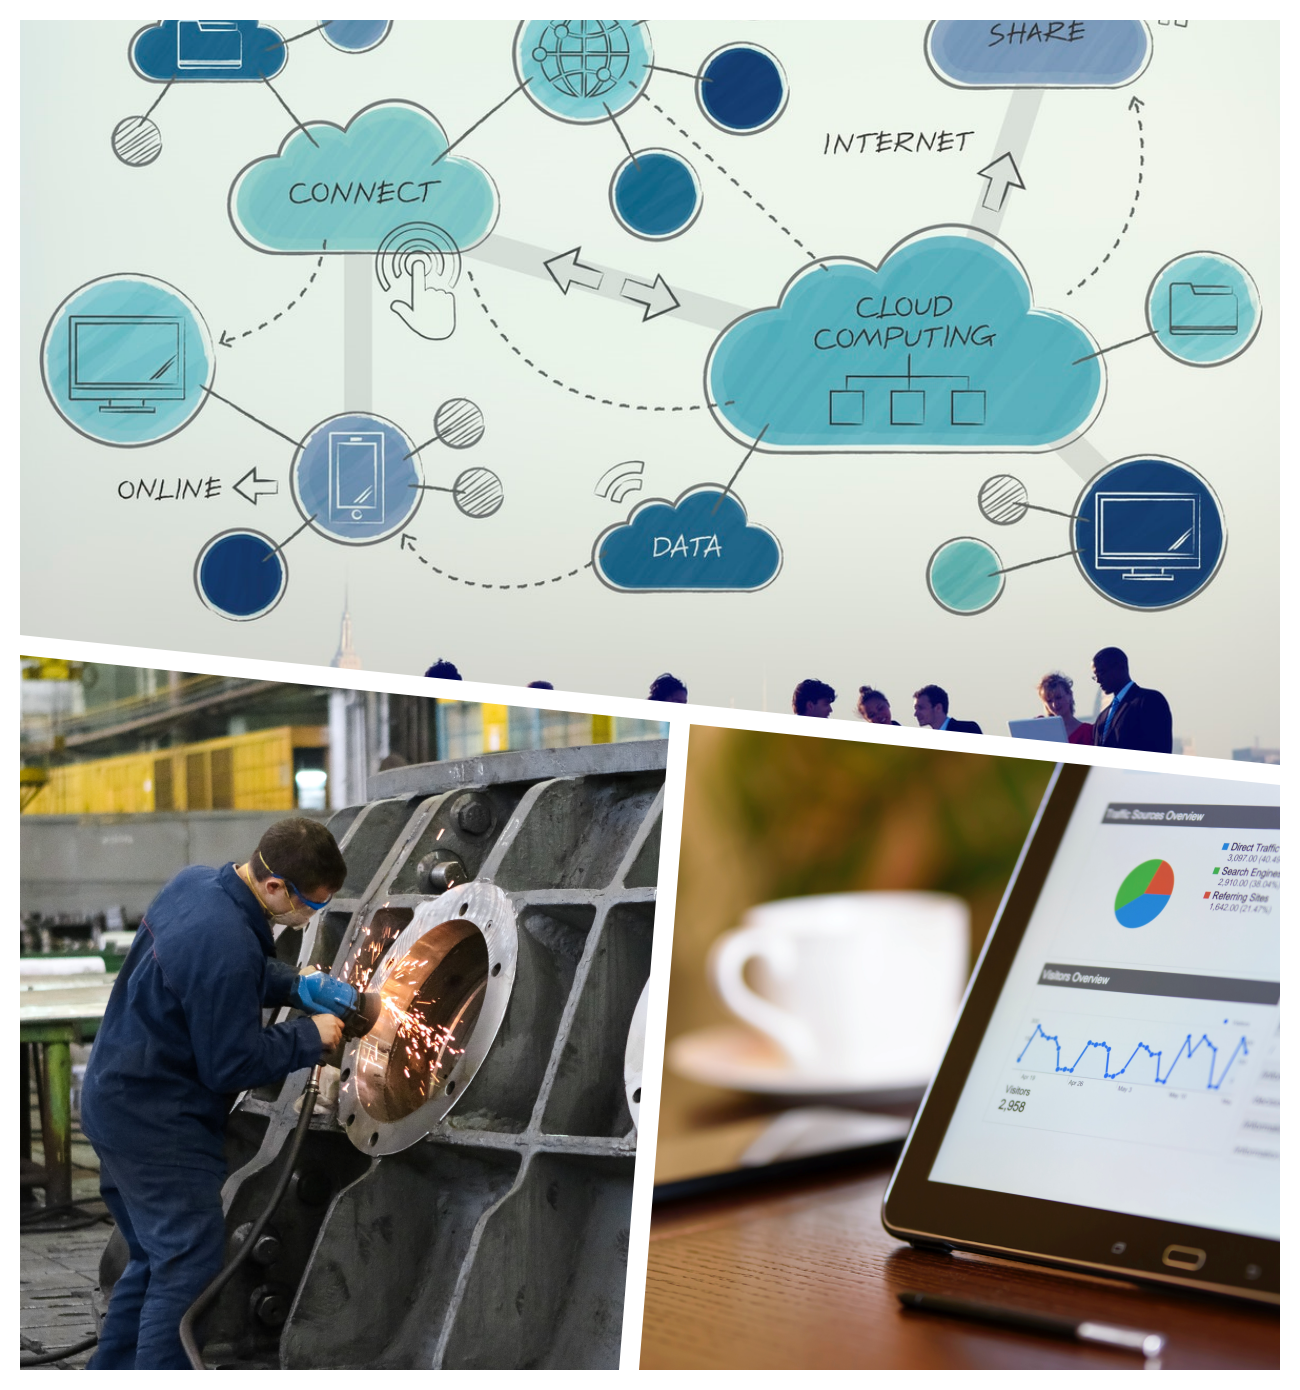 ZEST Cloud Software for Small Engineering Manufacturing Service Company